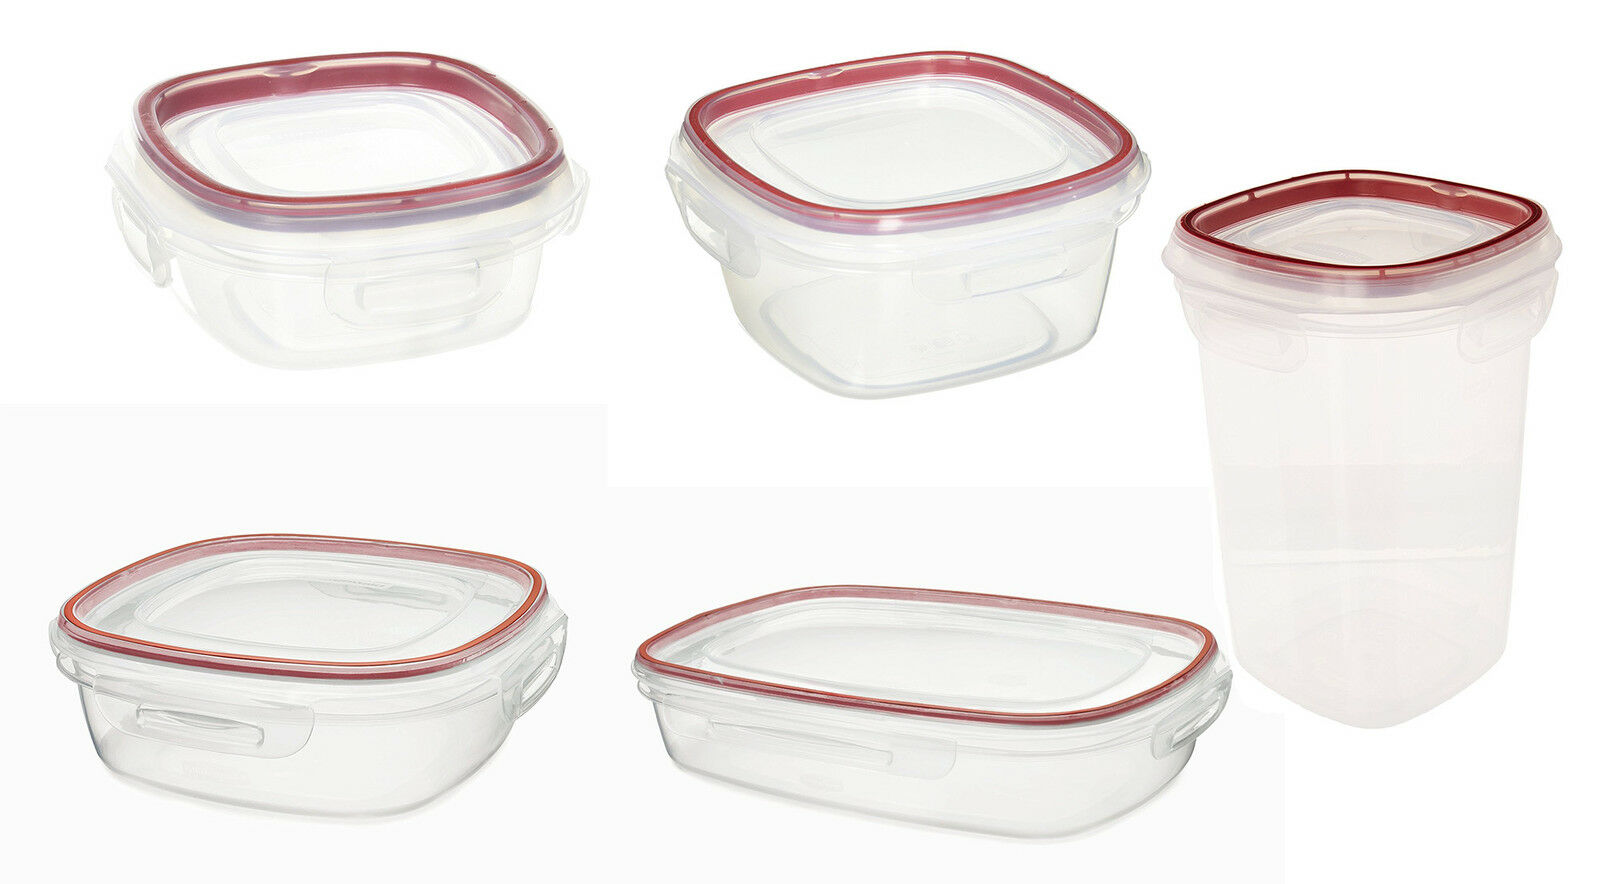 Rubbermaid Lock Its Food Storage Containers With Lids 11